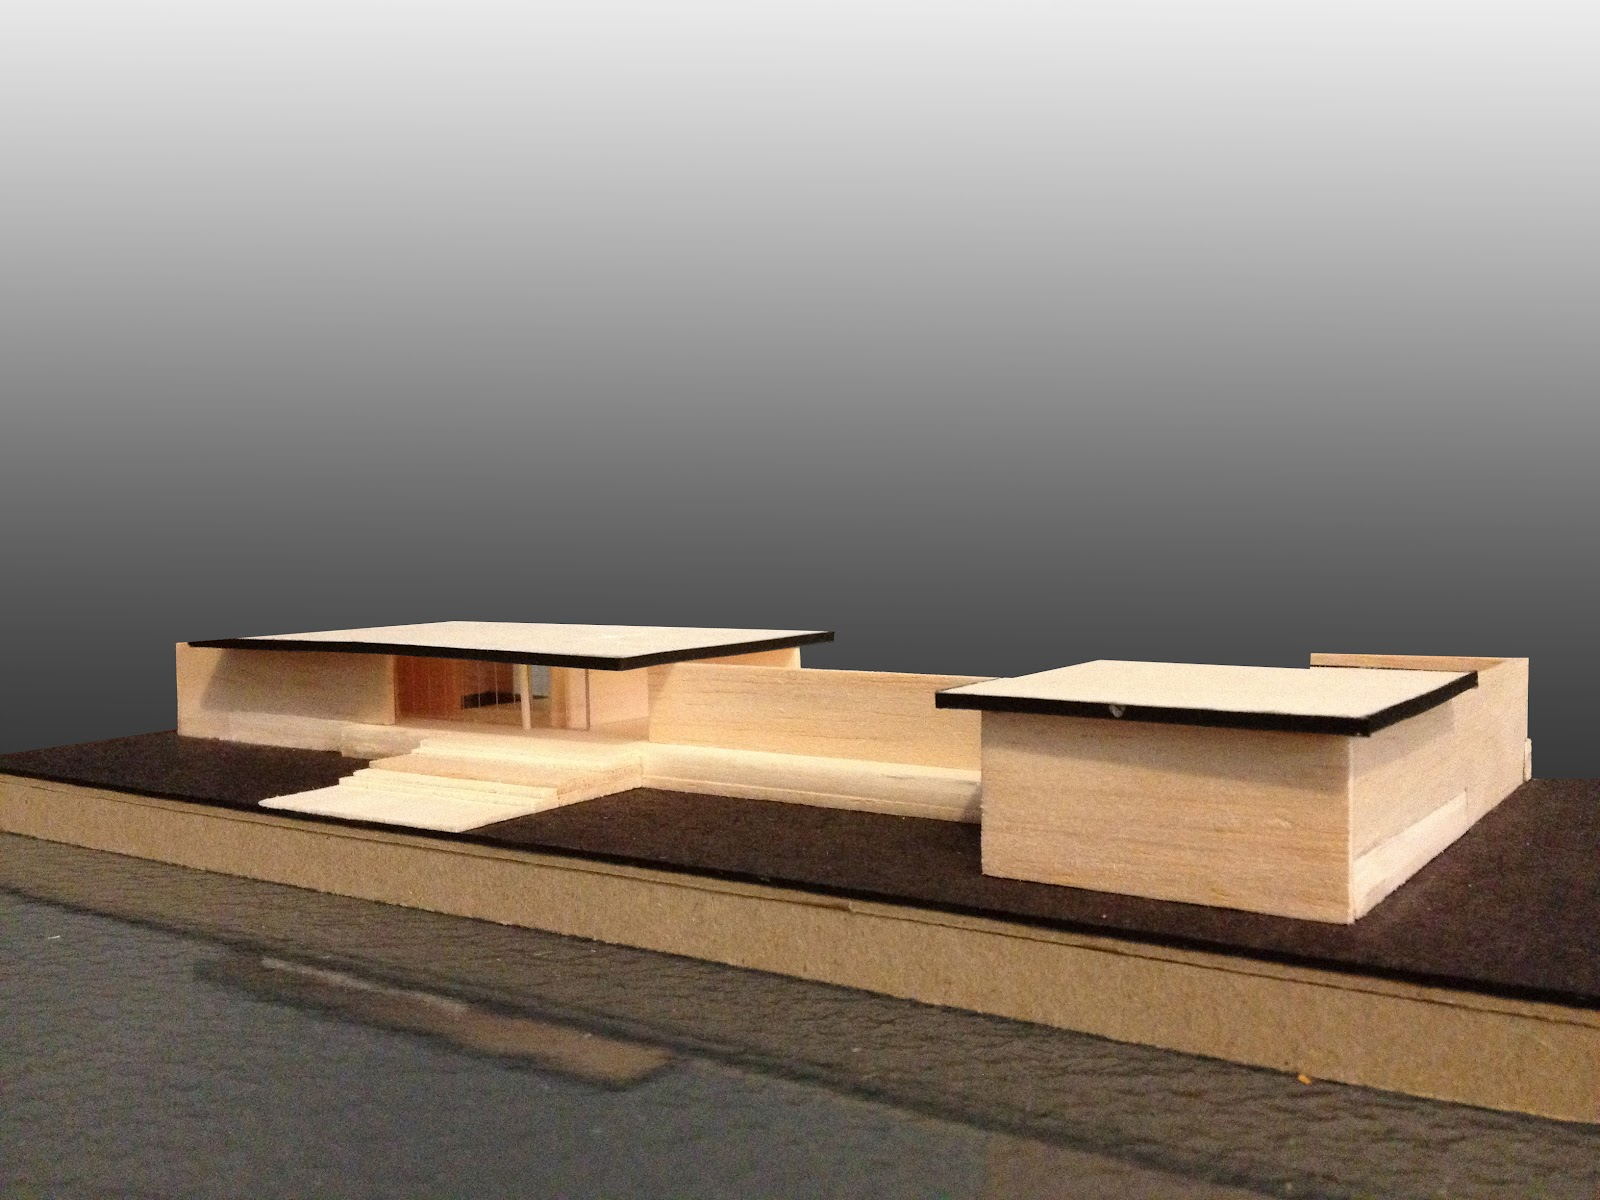 Above are some images of the barcelona pavilion model 1 200 below